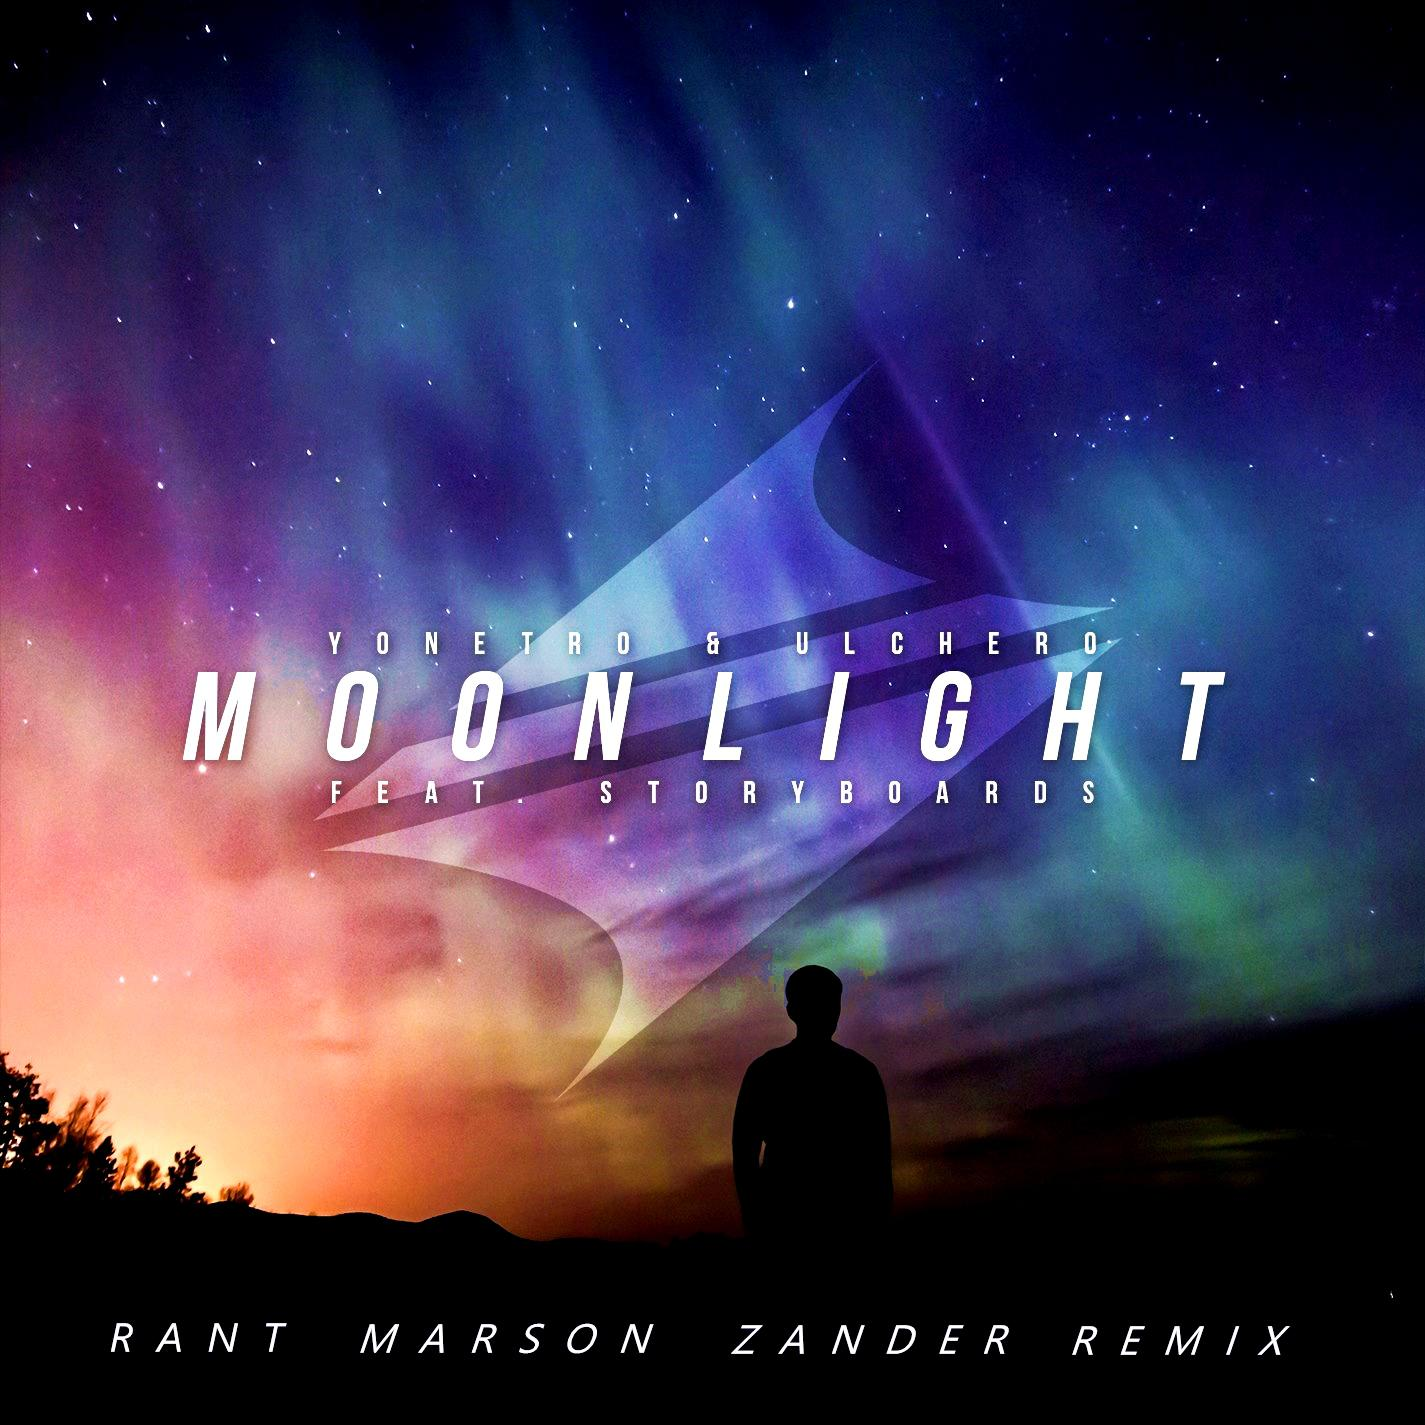 Moonlight(Rant Marson Zander Remix)